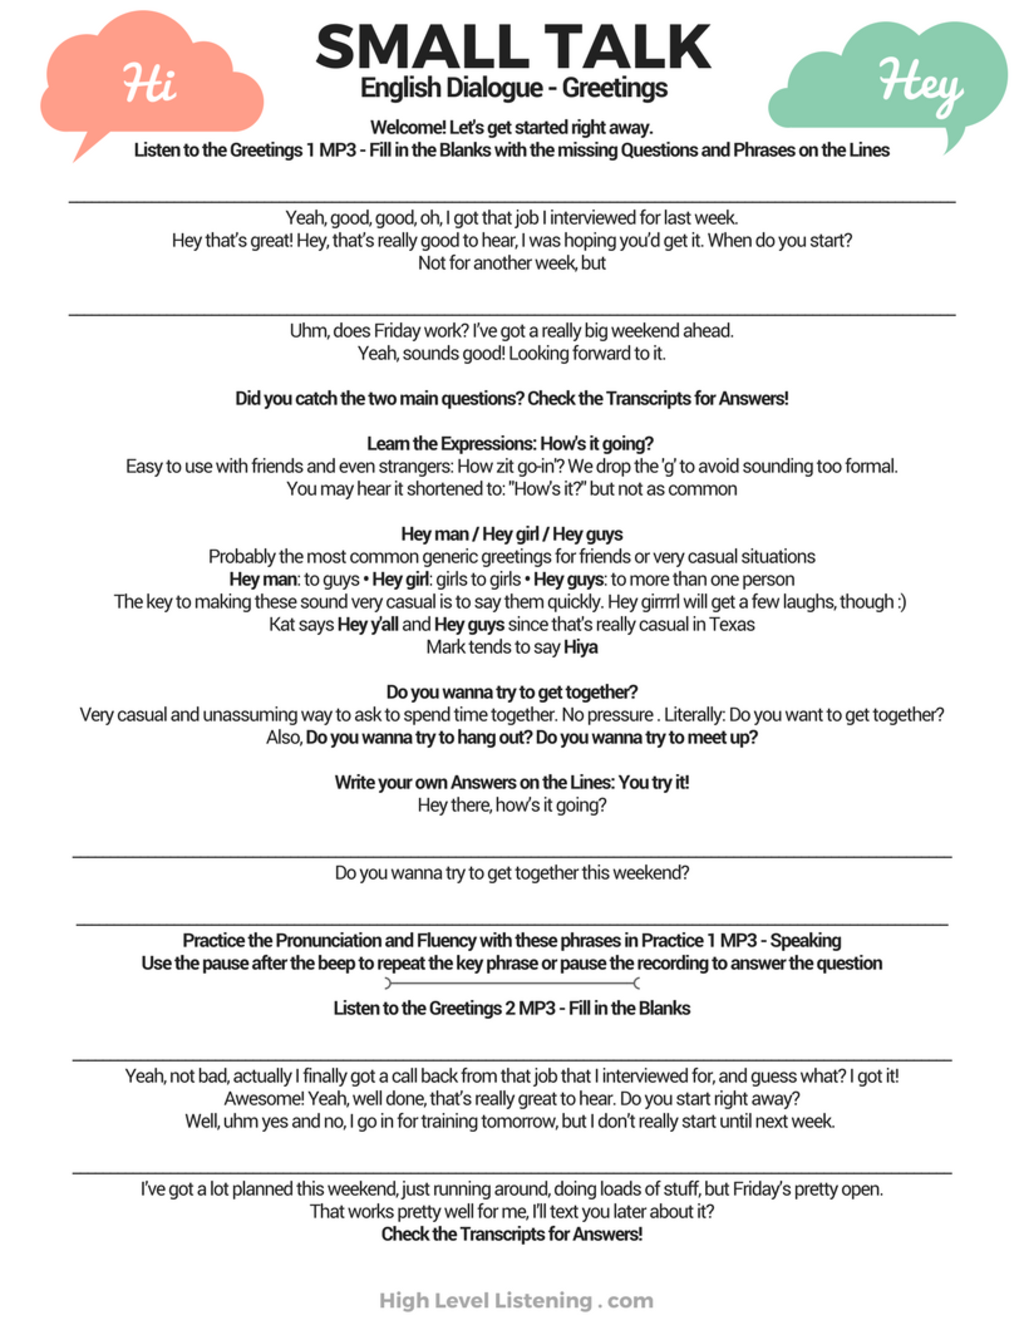 Small talk introducing yourself in english naturally and small talk greetings freebie worksheets and audio m4hsunfo